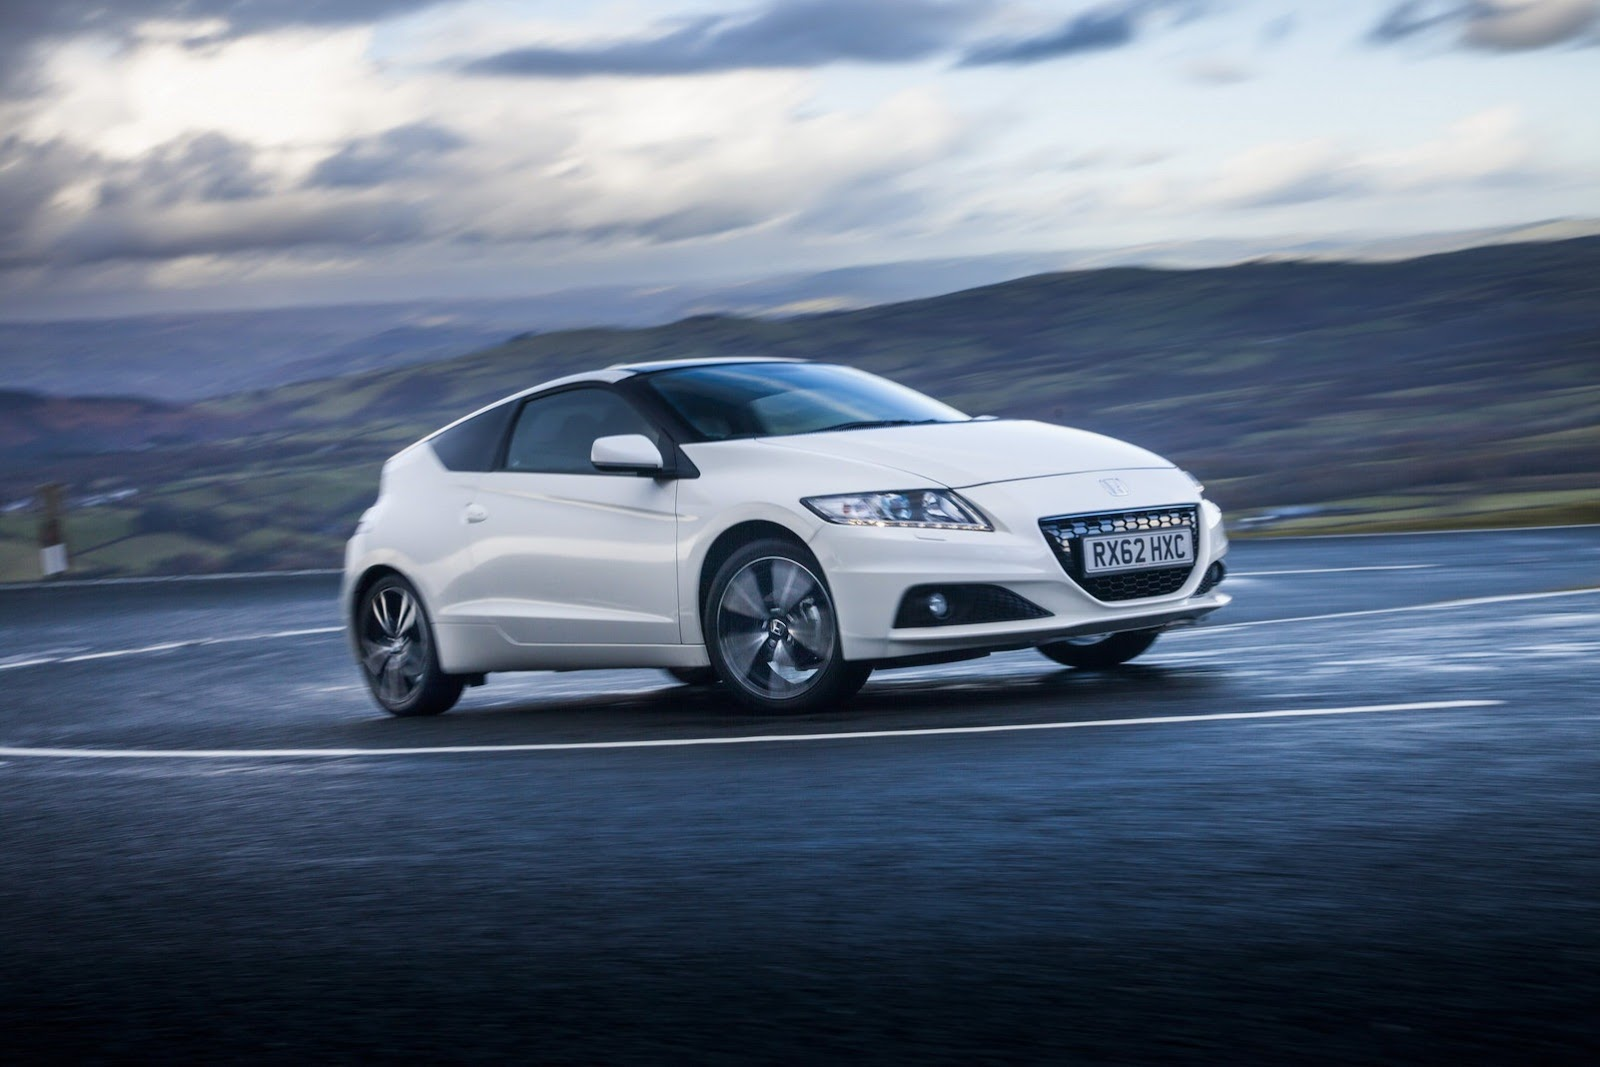 2013 Honda CR-Z